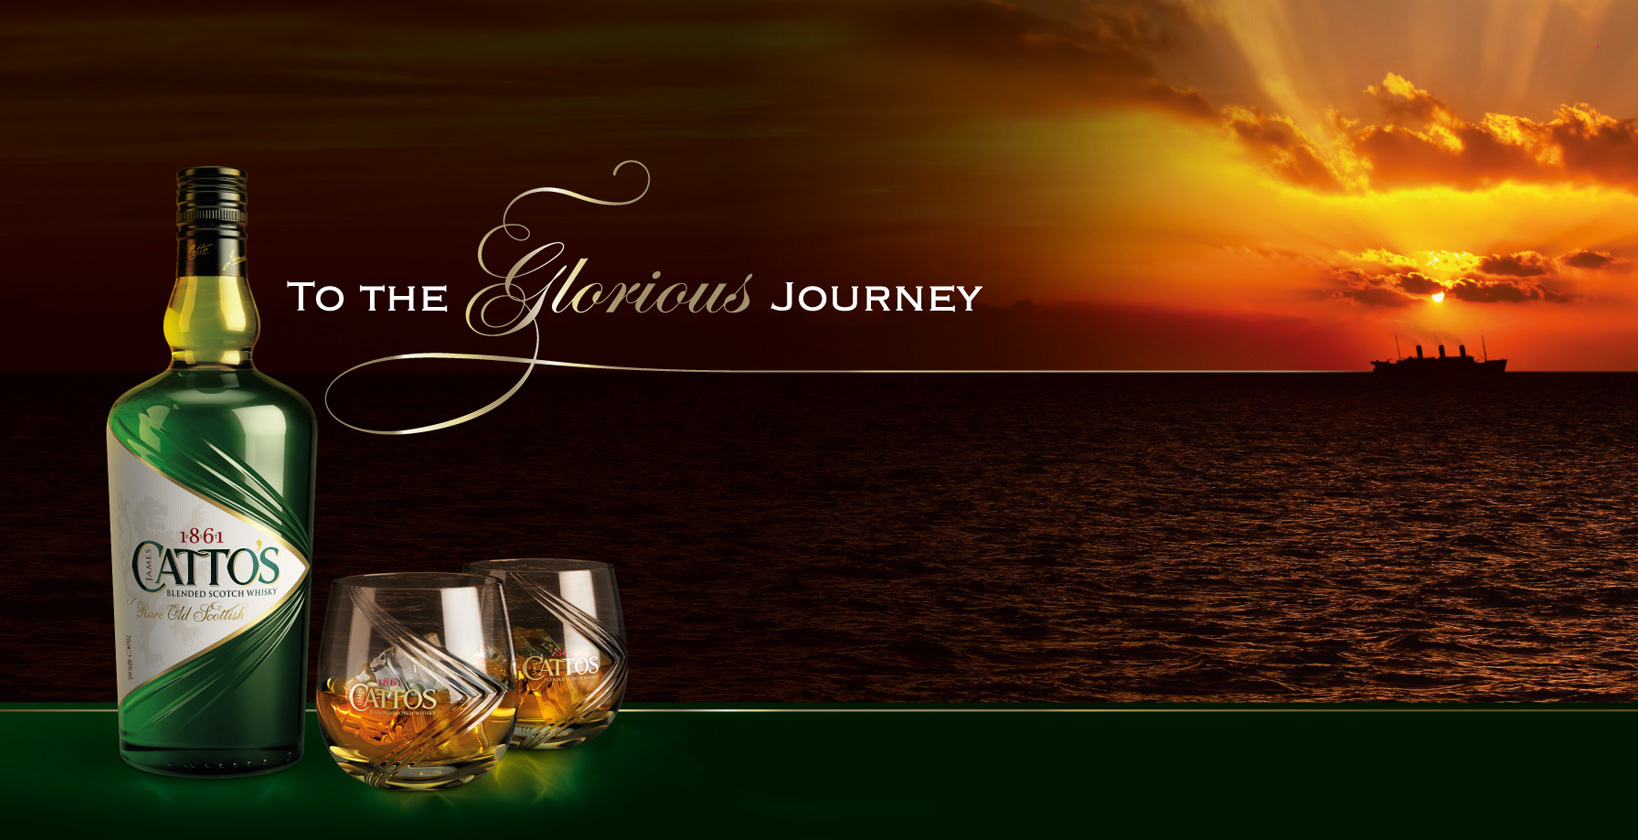 Catto's Blended Scotch Whisky - To the Glorious Journey